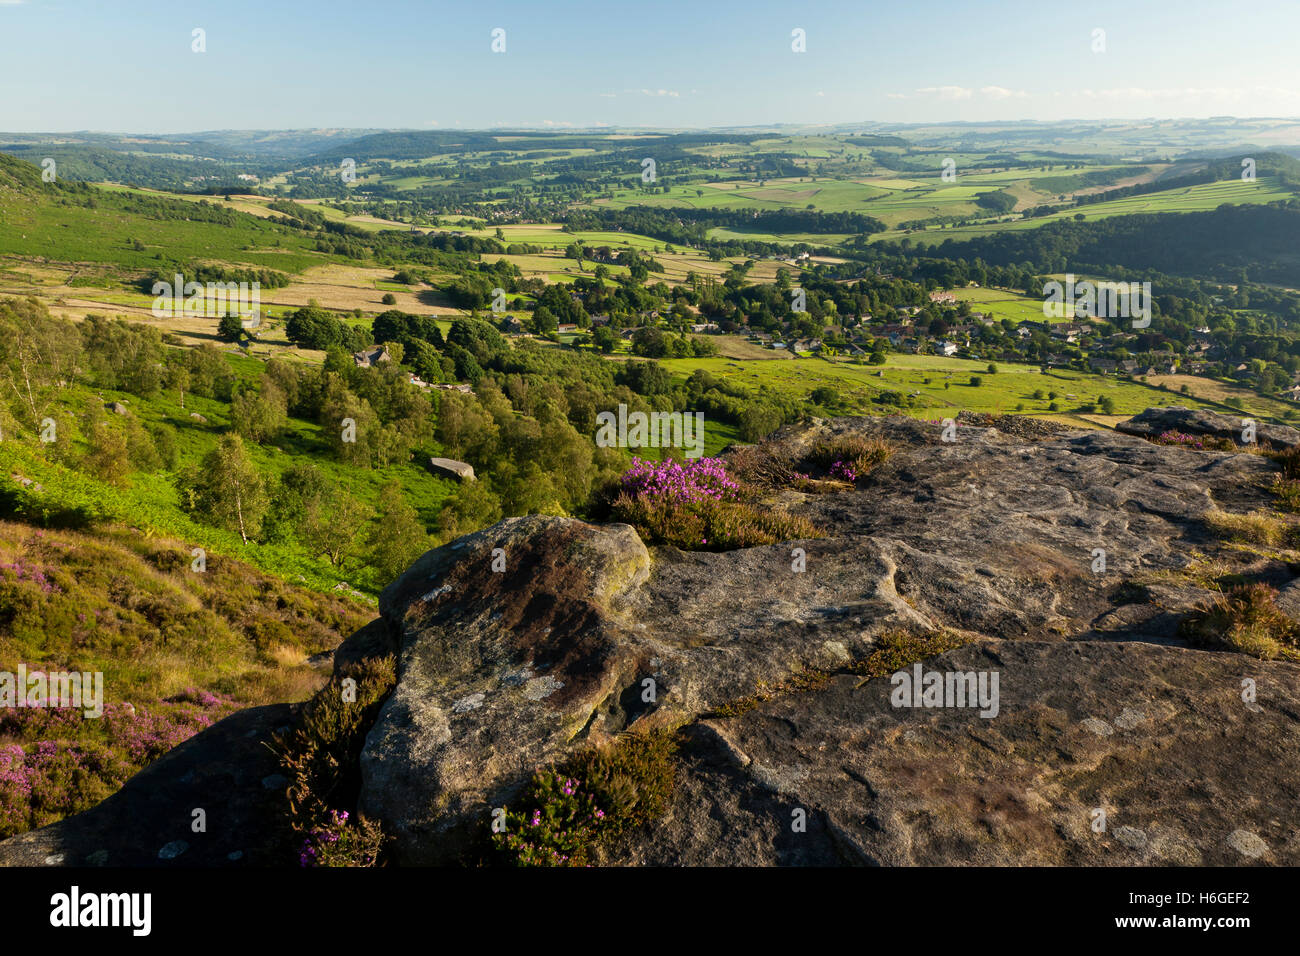 View of surrounding rural landscape of Baslow and Curbar from Curbar Edge, Derbyshire, England UK - Stock Image